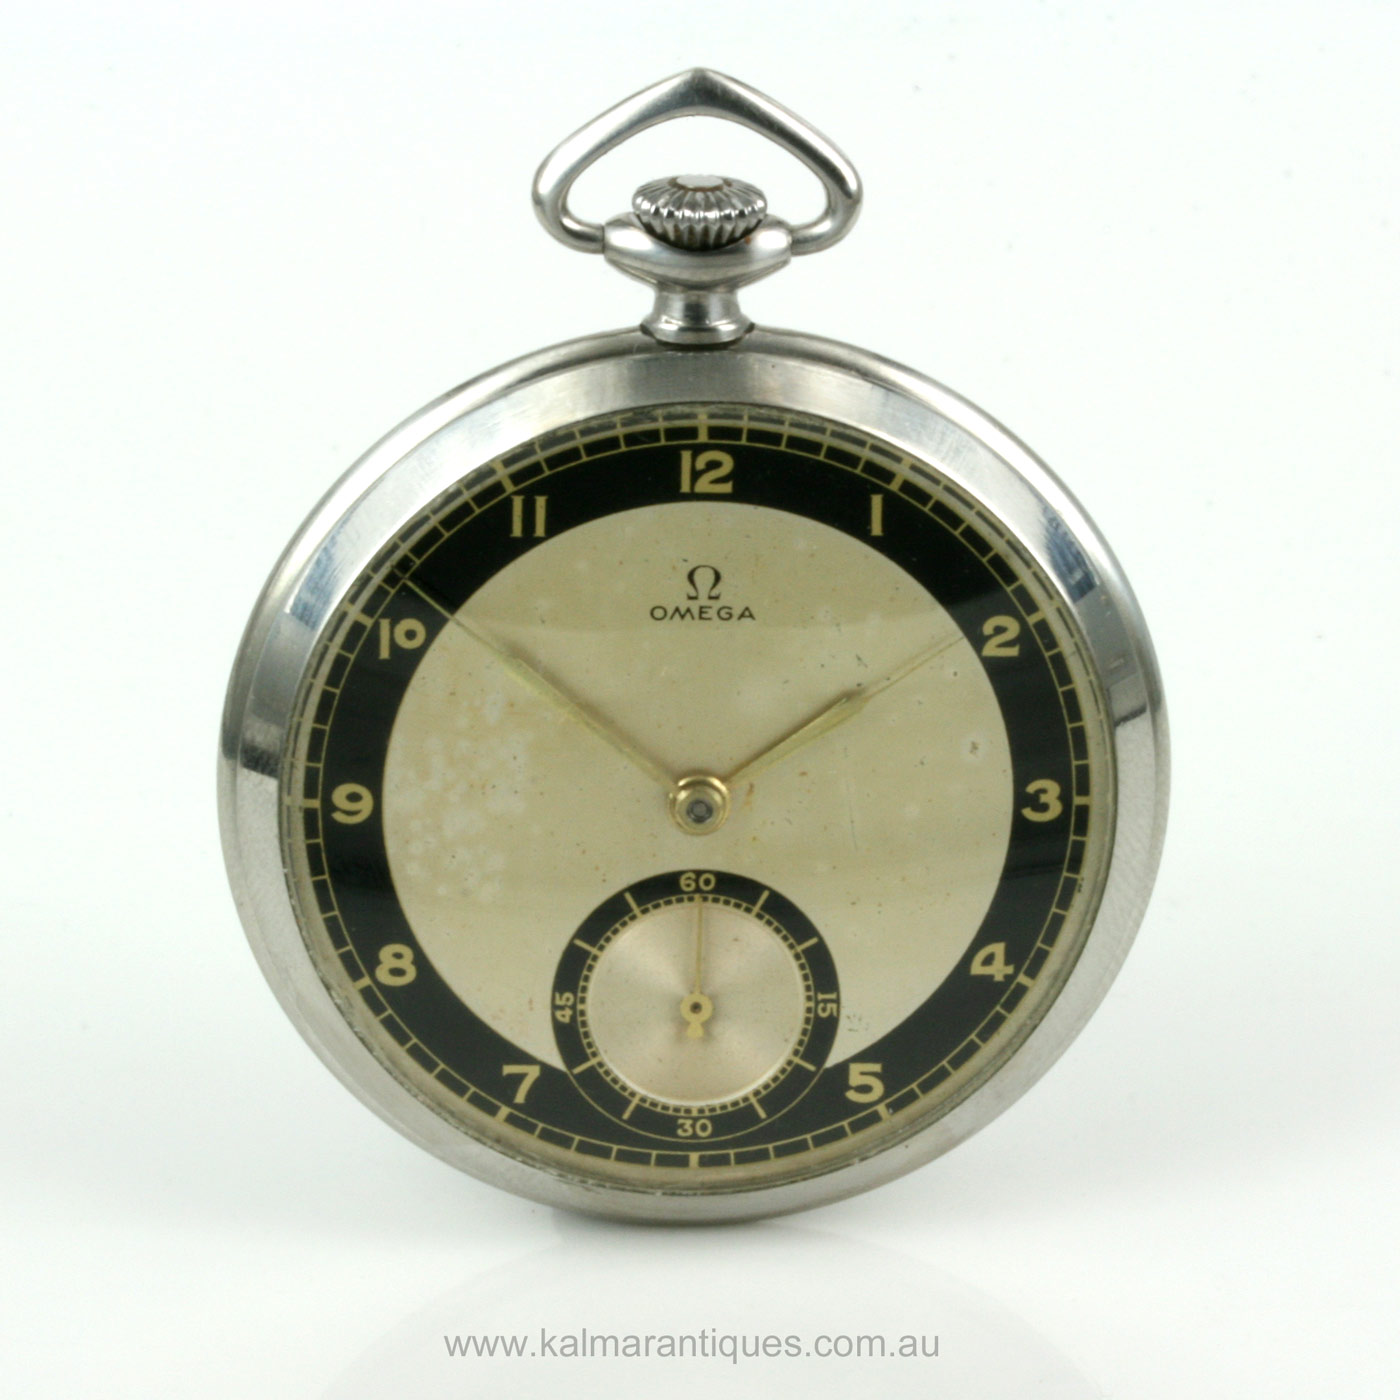 ... Omega pocket watch  Return to Previous Page. Bug Fix. Previous  Next d3a204fa60